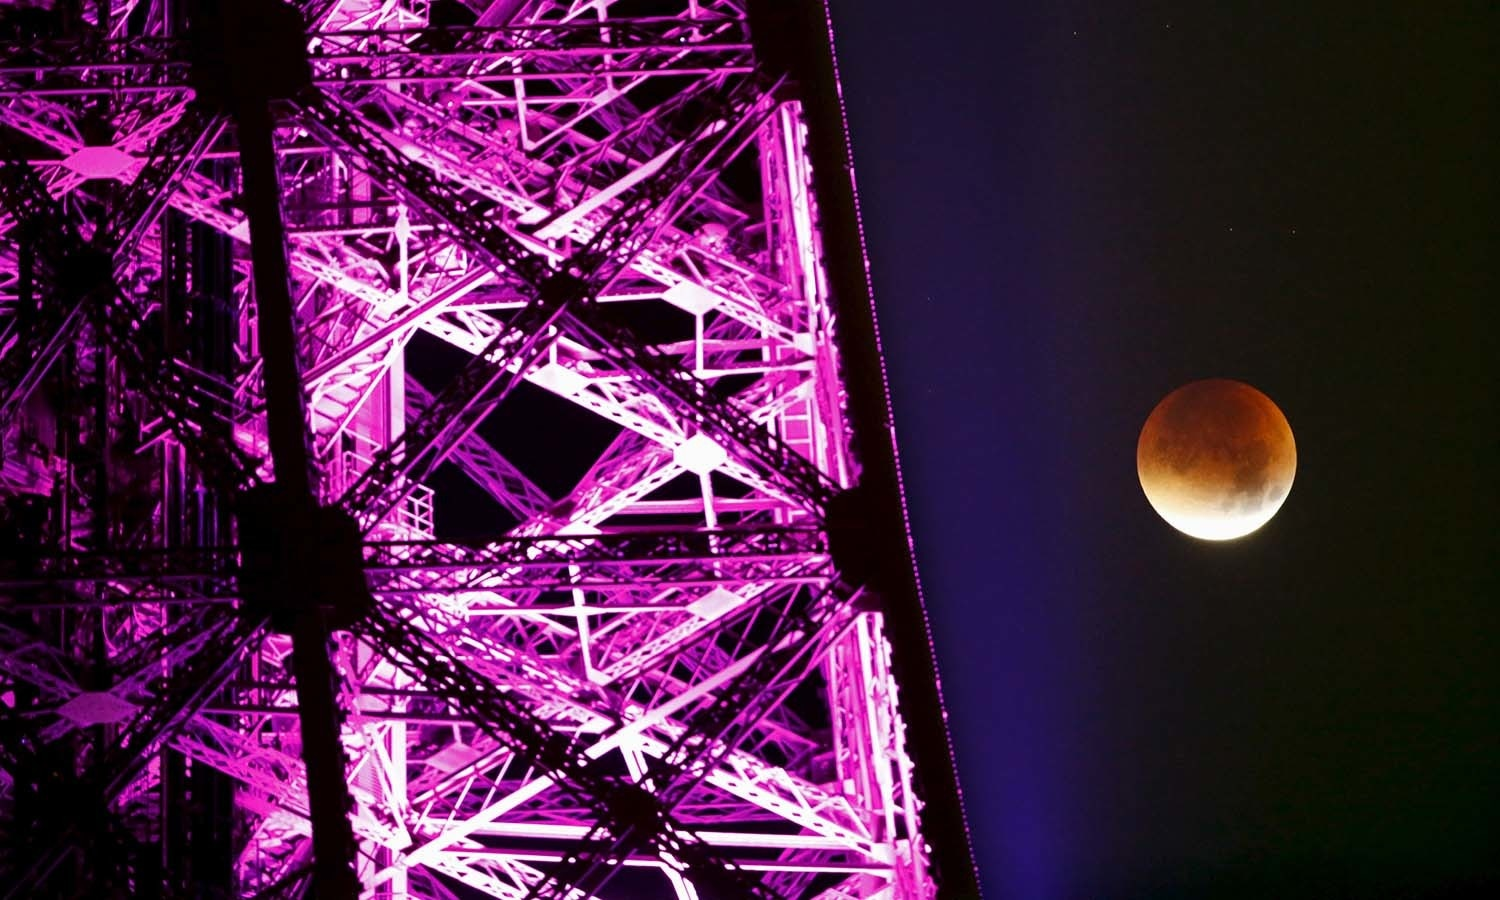 The Moon, appearing next to the Eiffel Tower in a dim red colour, is covered by the Earth's shadow during a total lunar eclipse over Paris, France. — Reuters